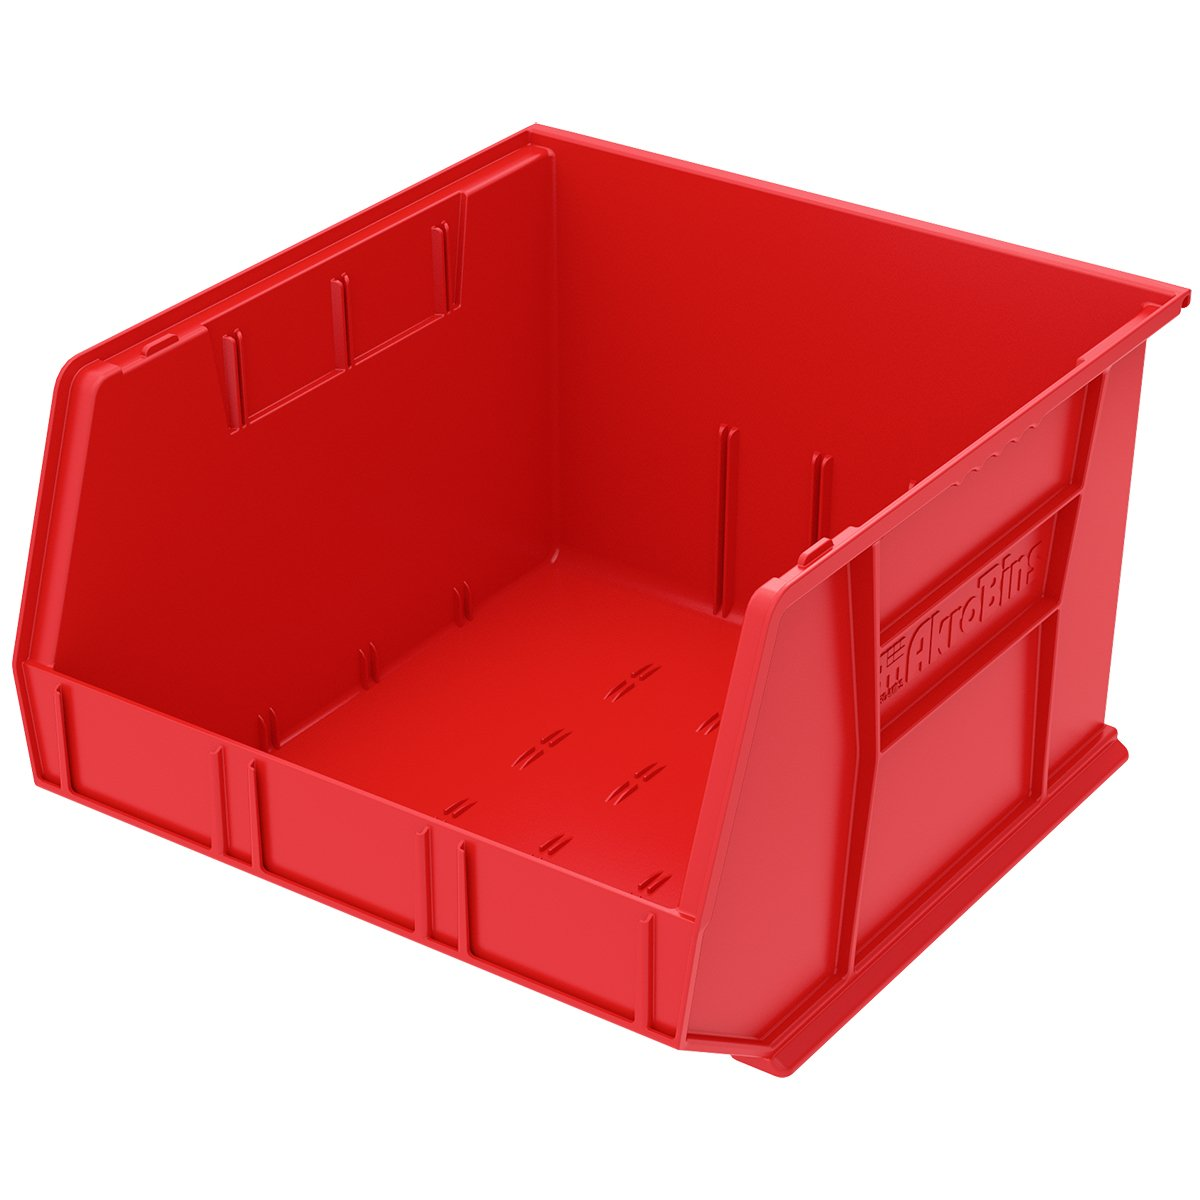 Case of 3 Yellow Akro-Mils 30270 Plastic Storage Stacking Hanging Akro Bin 18-Inch by 16-Inch by 11-Inch